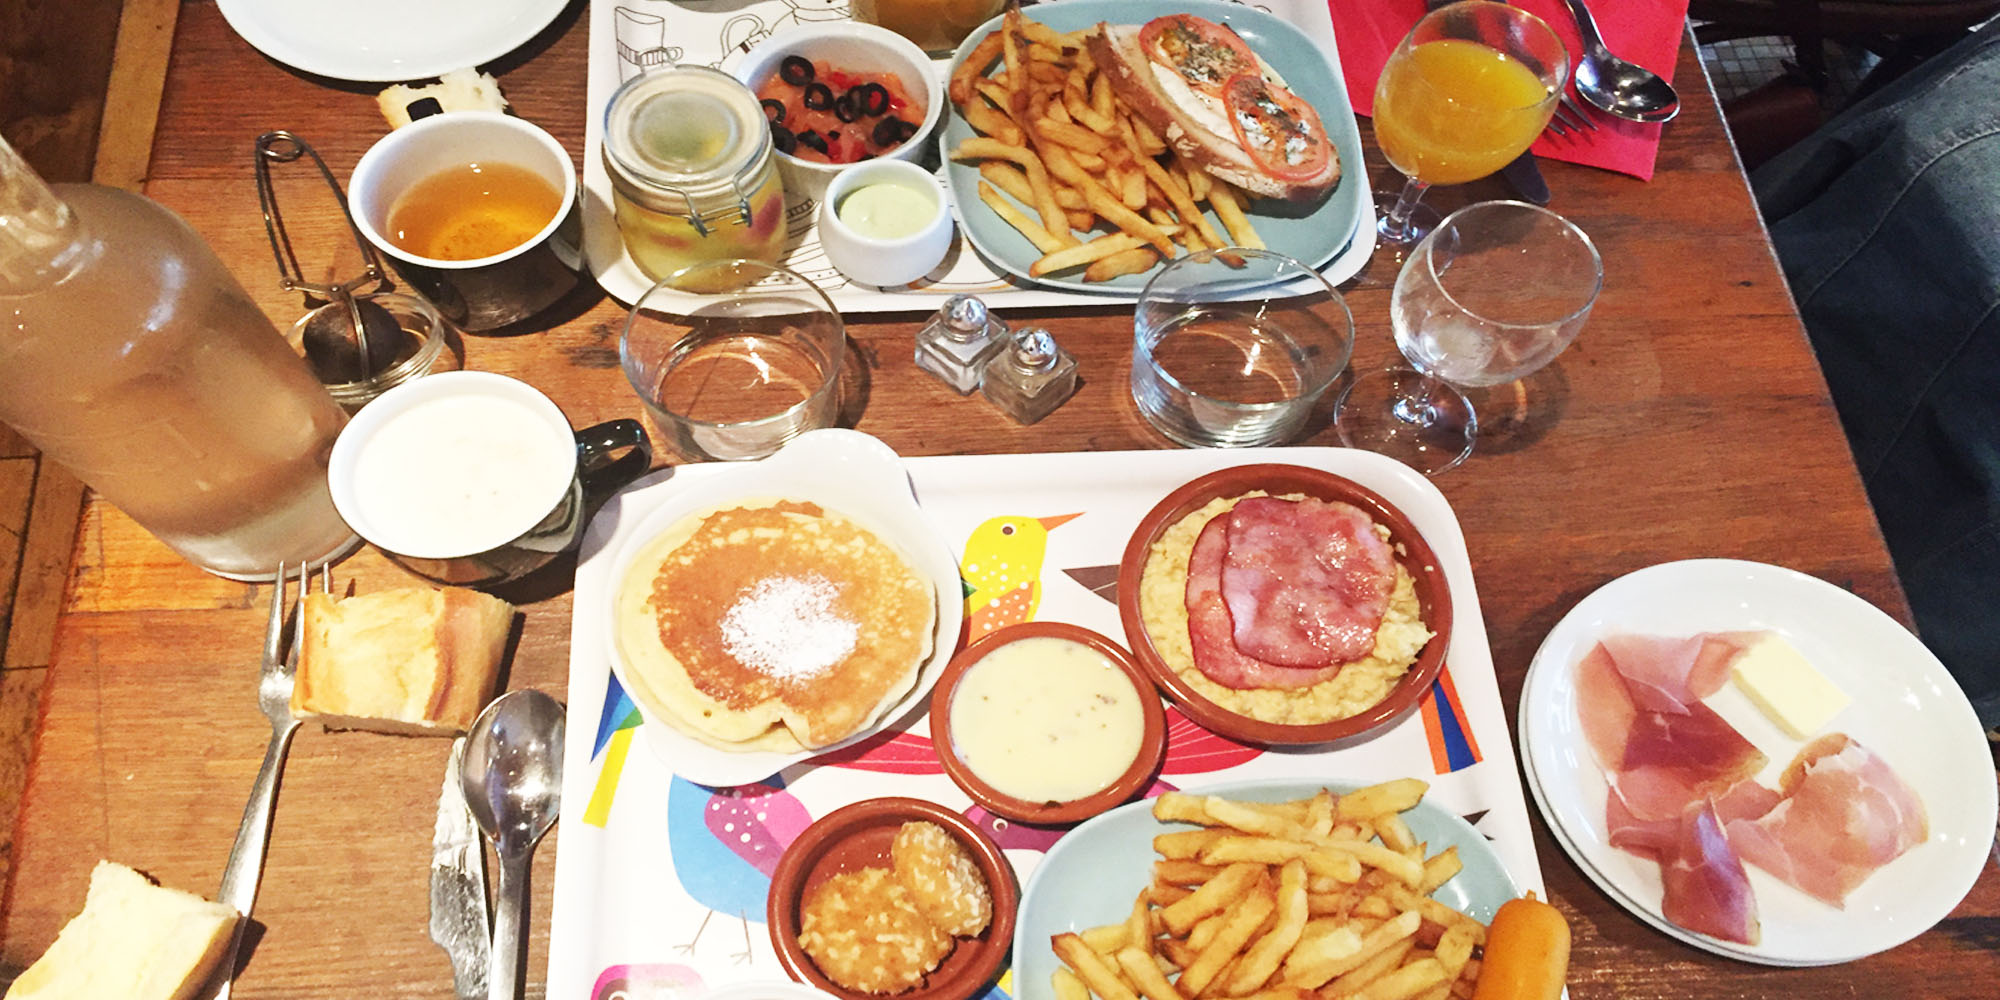 Brunch Comptoir Moderne (75015 Paris)